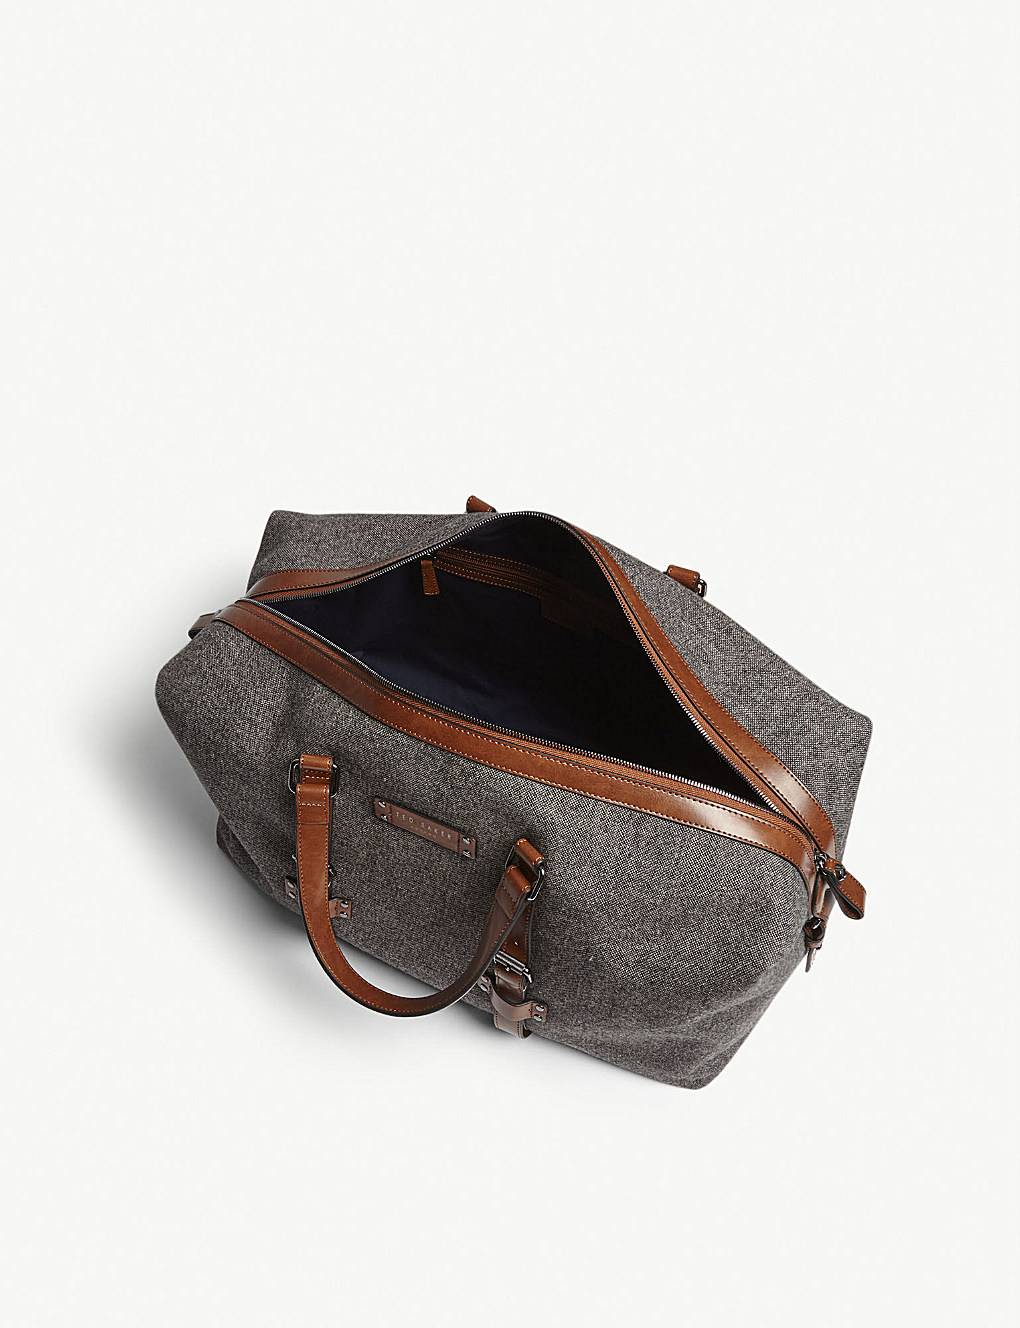 Sweat it out with style – 6 of the best gym bags for men